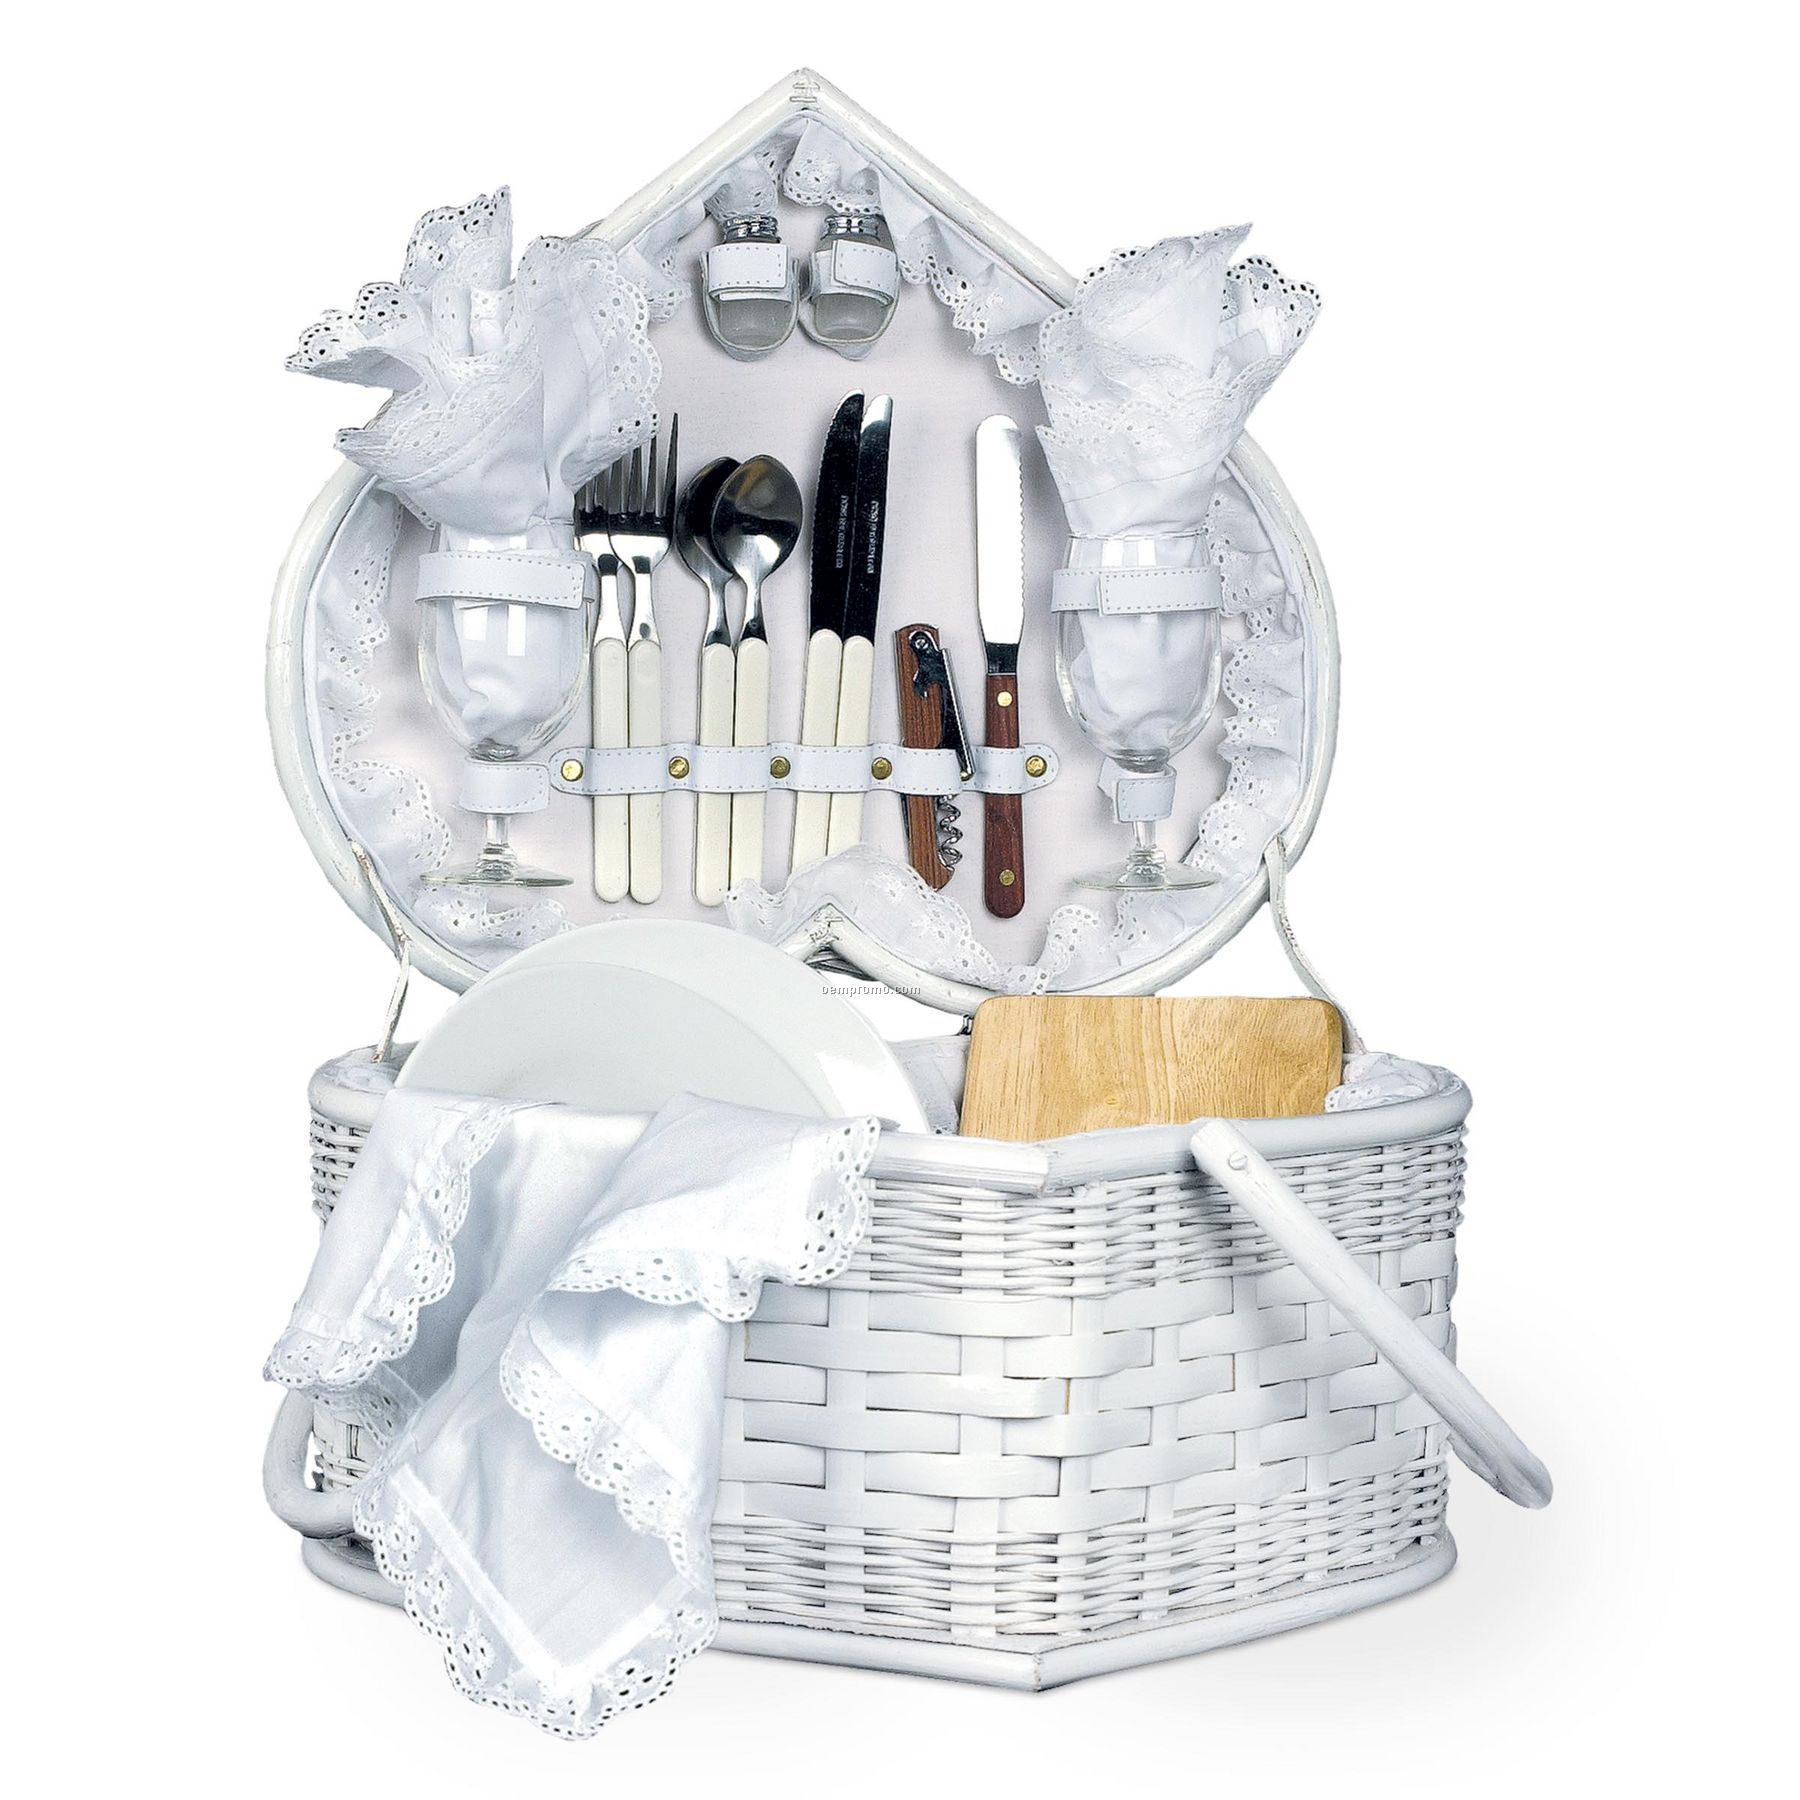 Wedding Gift Basket Ideas: Wedding Heart White Picnic Basket W/ Deluxe Service For 2